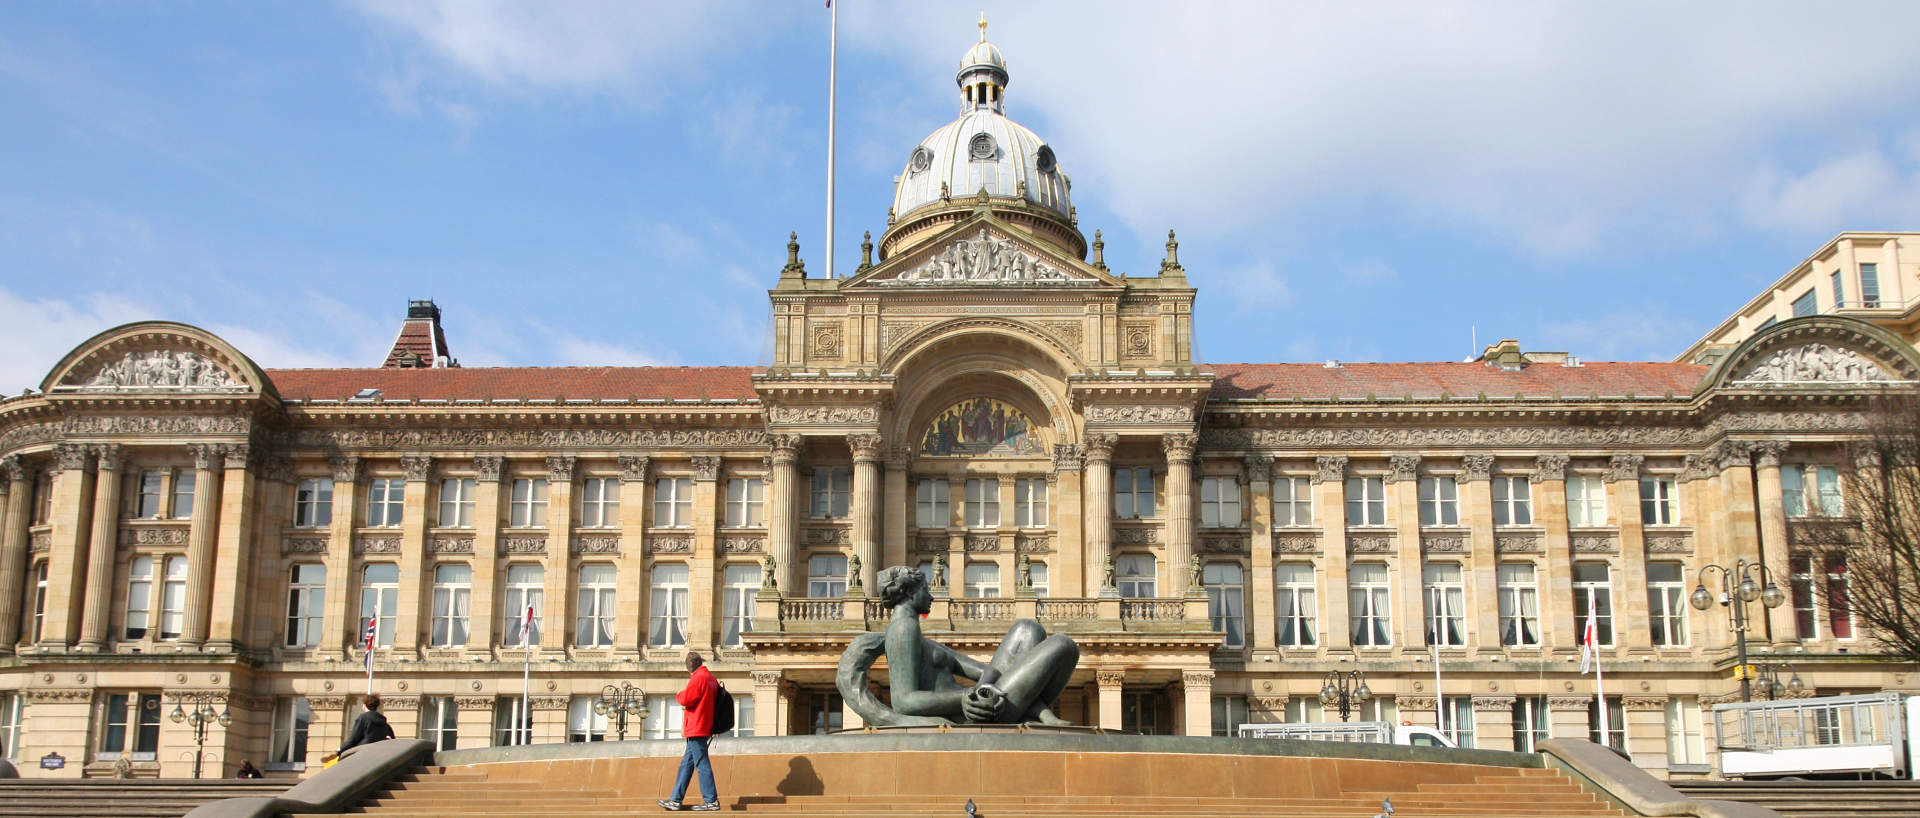 Birmingham Council House at Victoria Square near PREMIER SUITES Birmingham